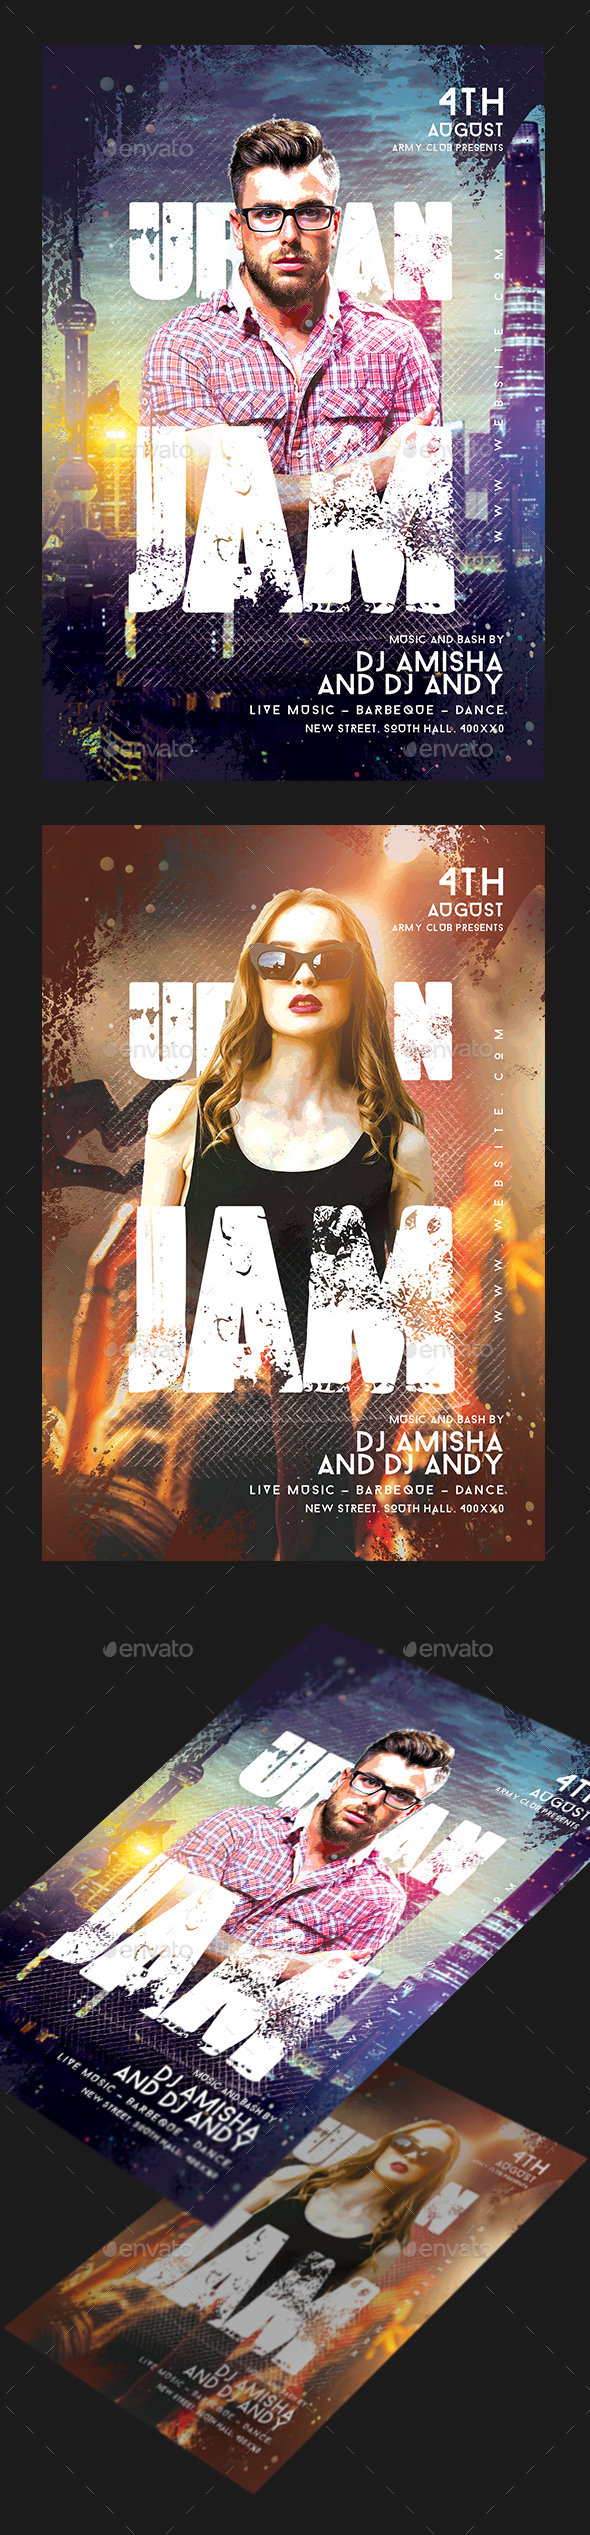 Urban Jam Party Flyer - Clubs & Parties Events